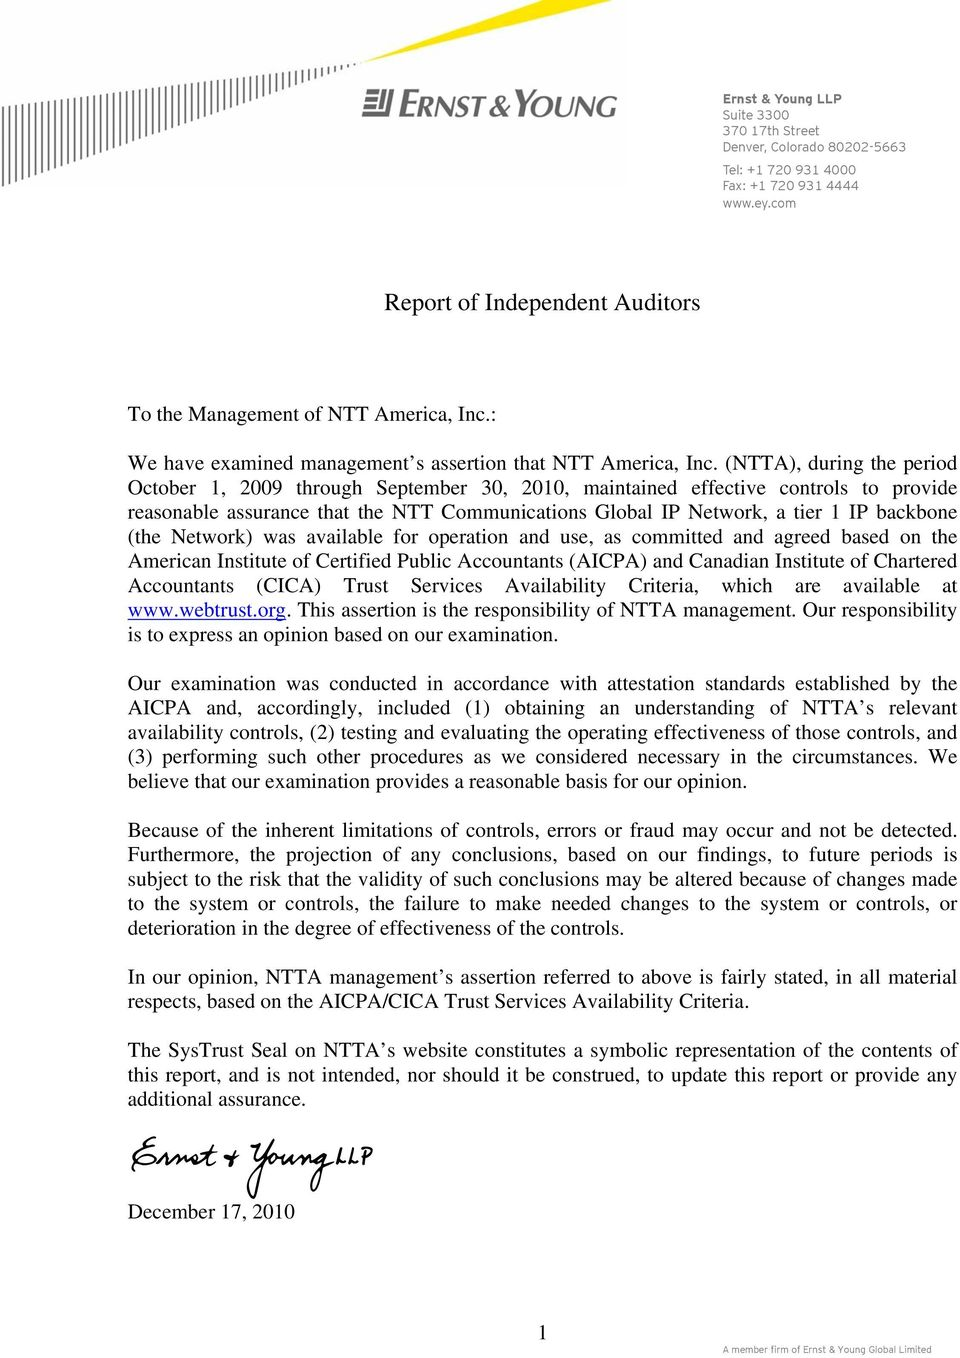 (NTTA), during the period October 1, 2009 through September 30, 2010, maintained effective controls to provide reasonable assurance that the, a tier 1 IP backbone (the Network) was available for